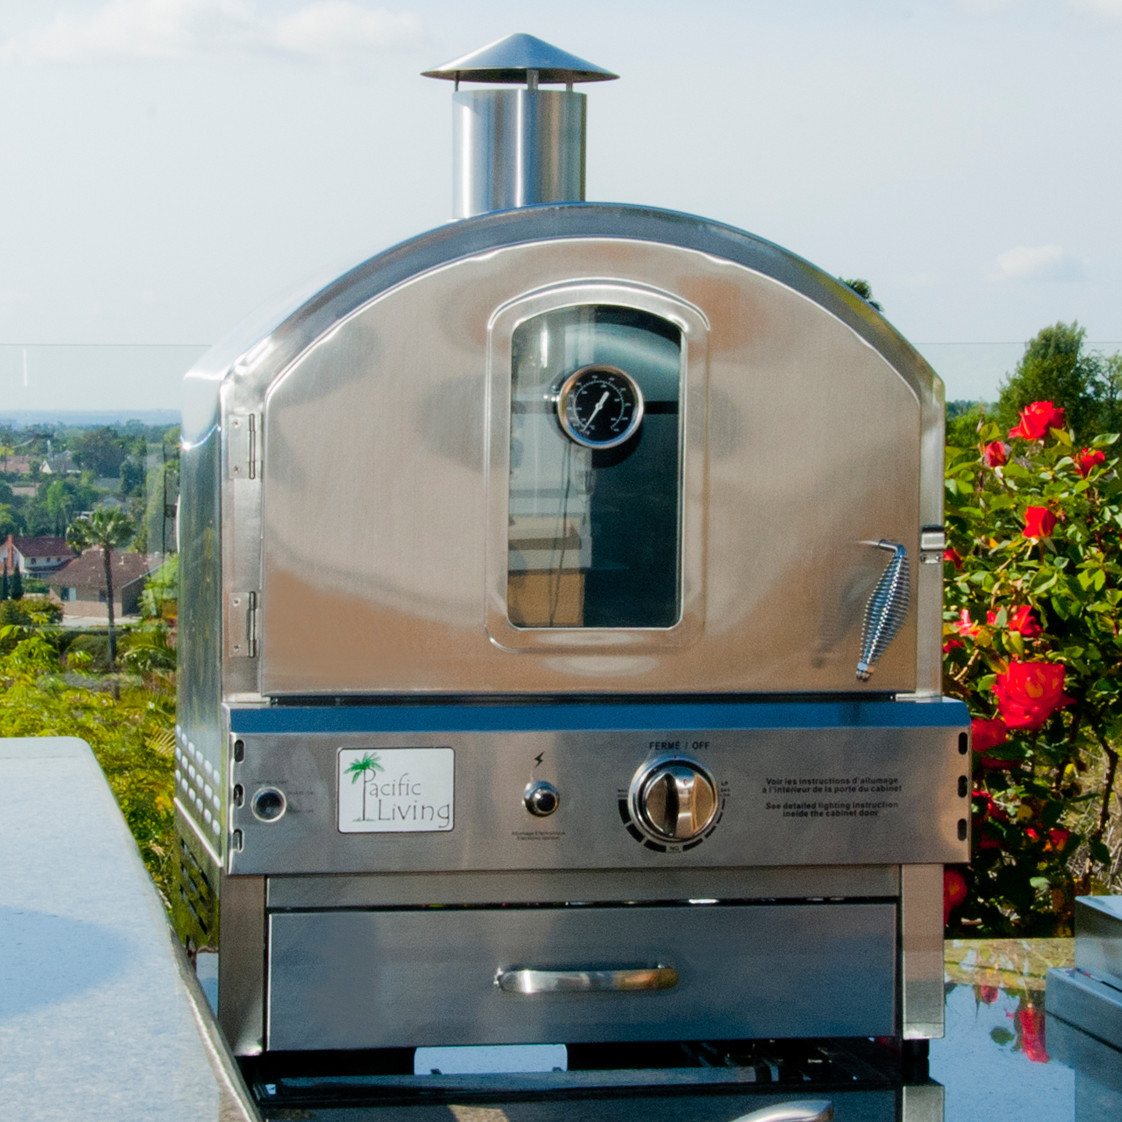 Pacific Living : Ovens: Outdoor Pizza Oven